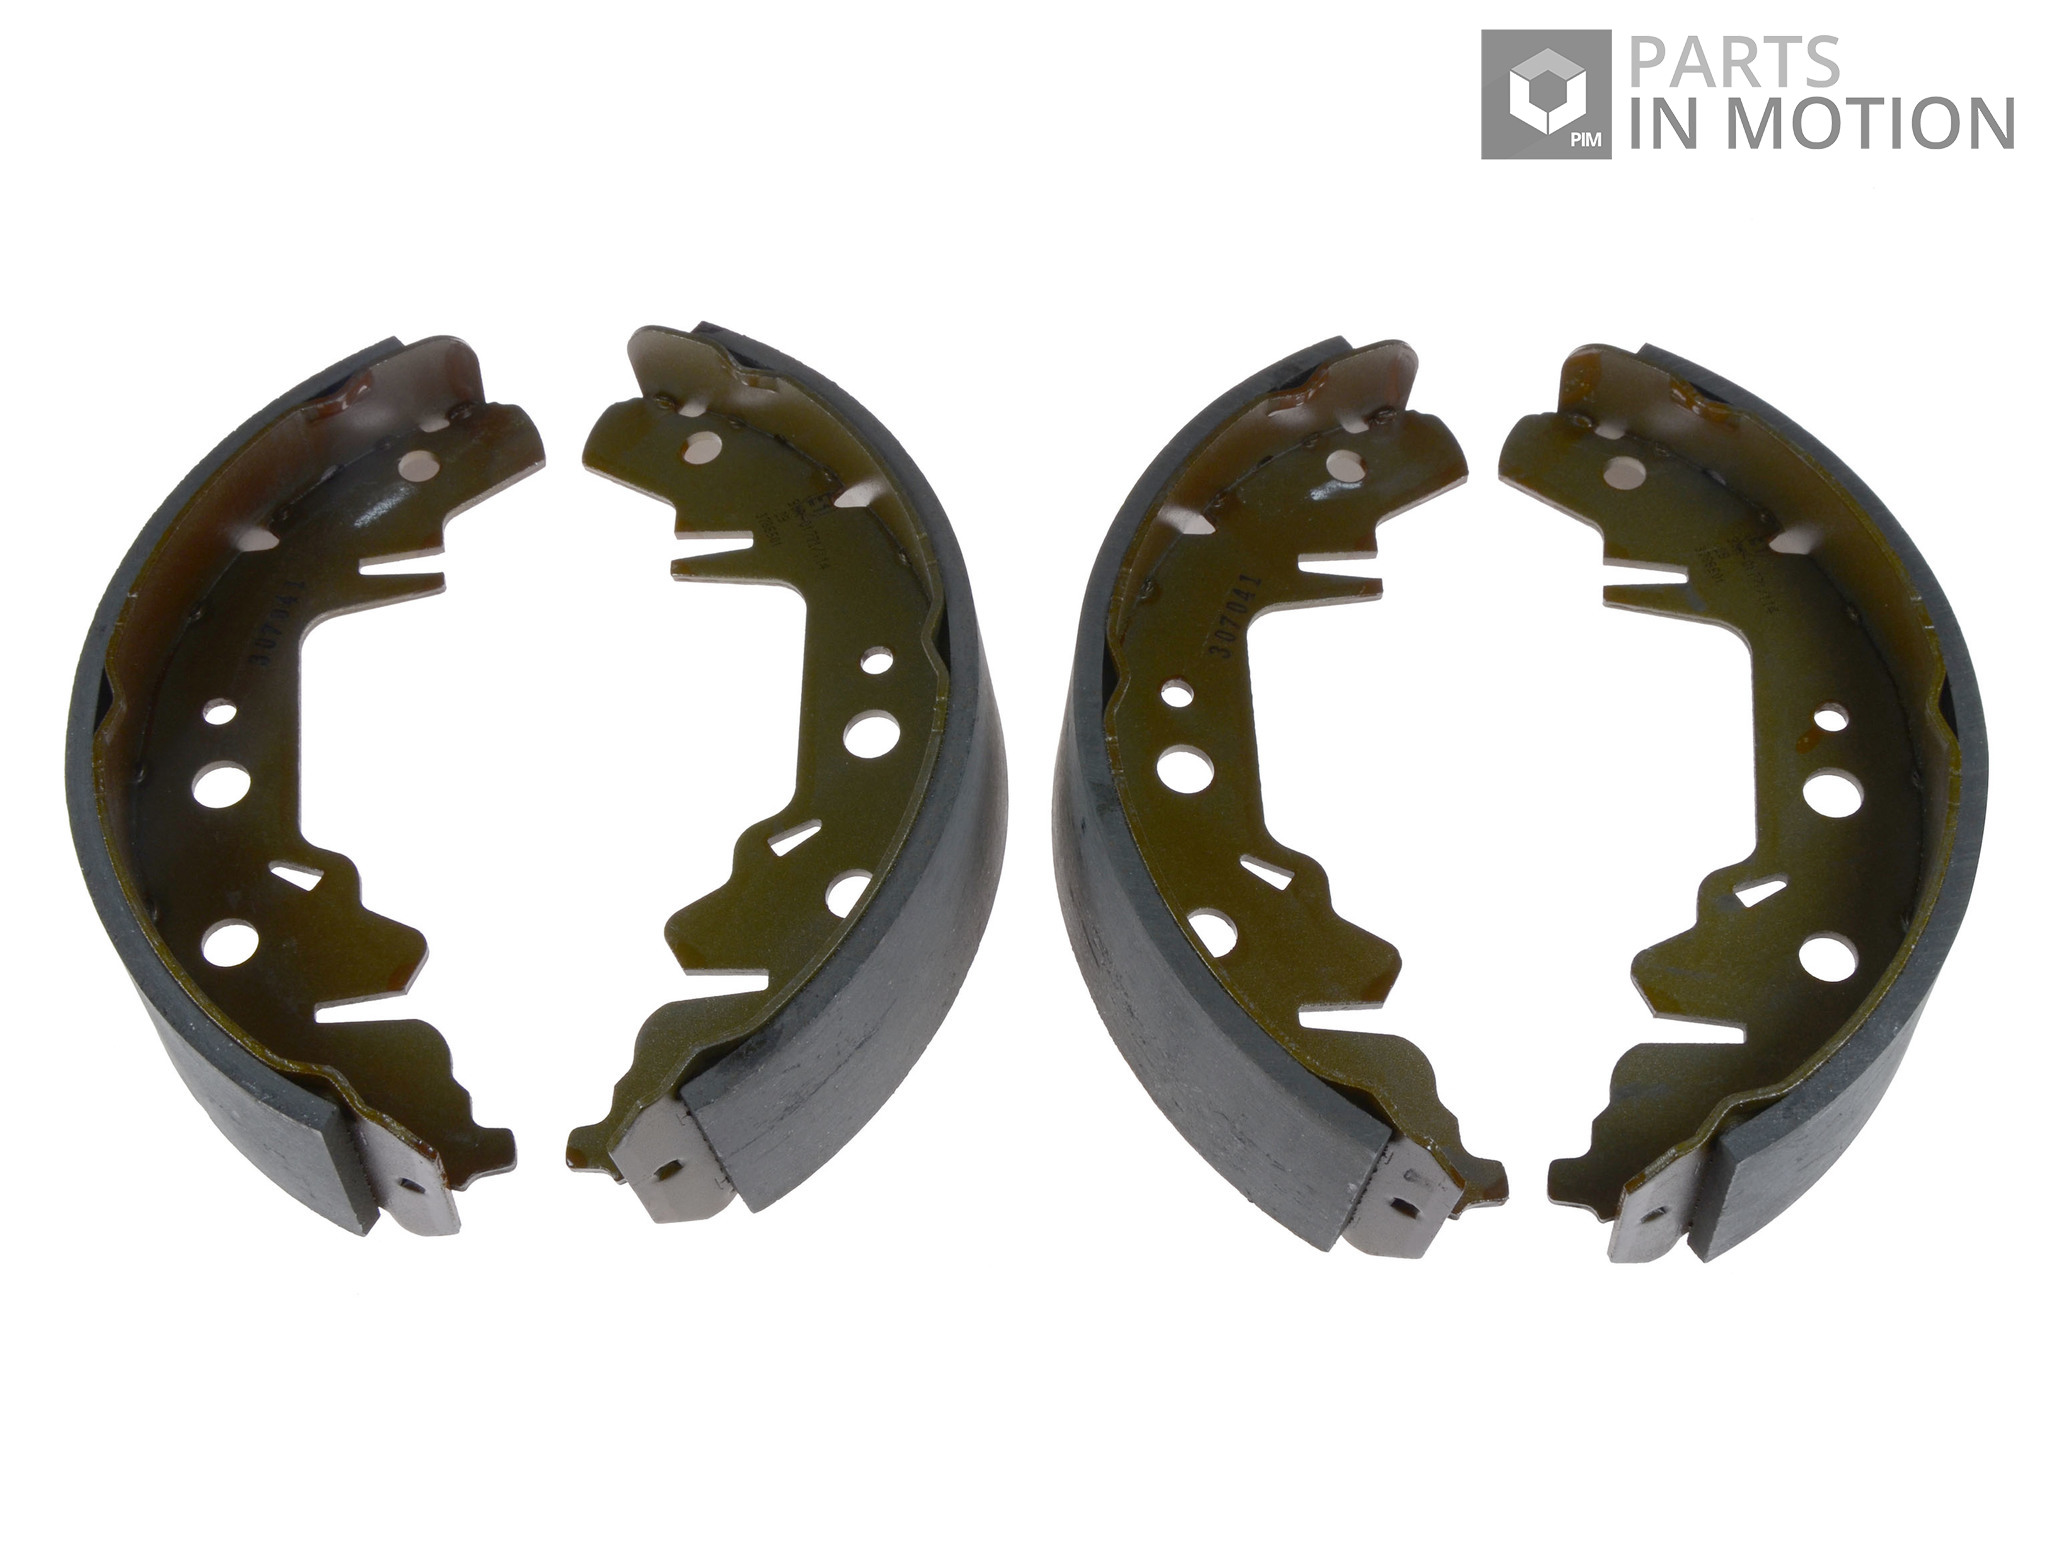 Brake Shoe Thickness In 32nds : Chrysler voyager mk brake shoes rear to egh set